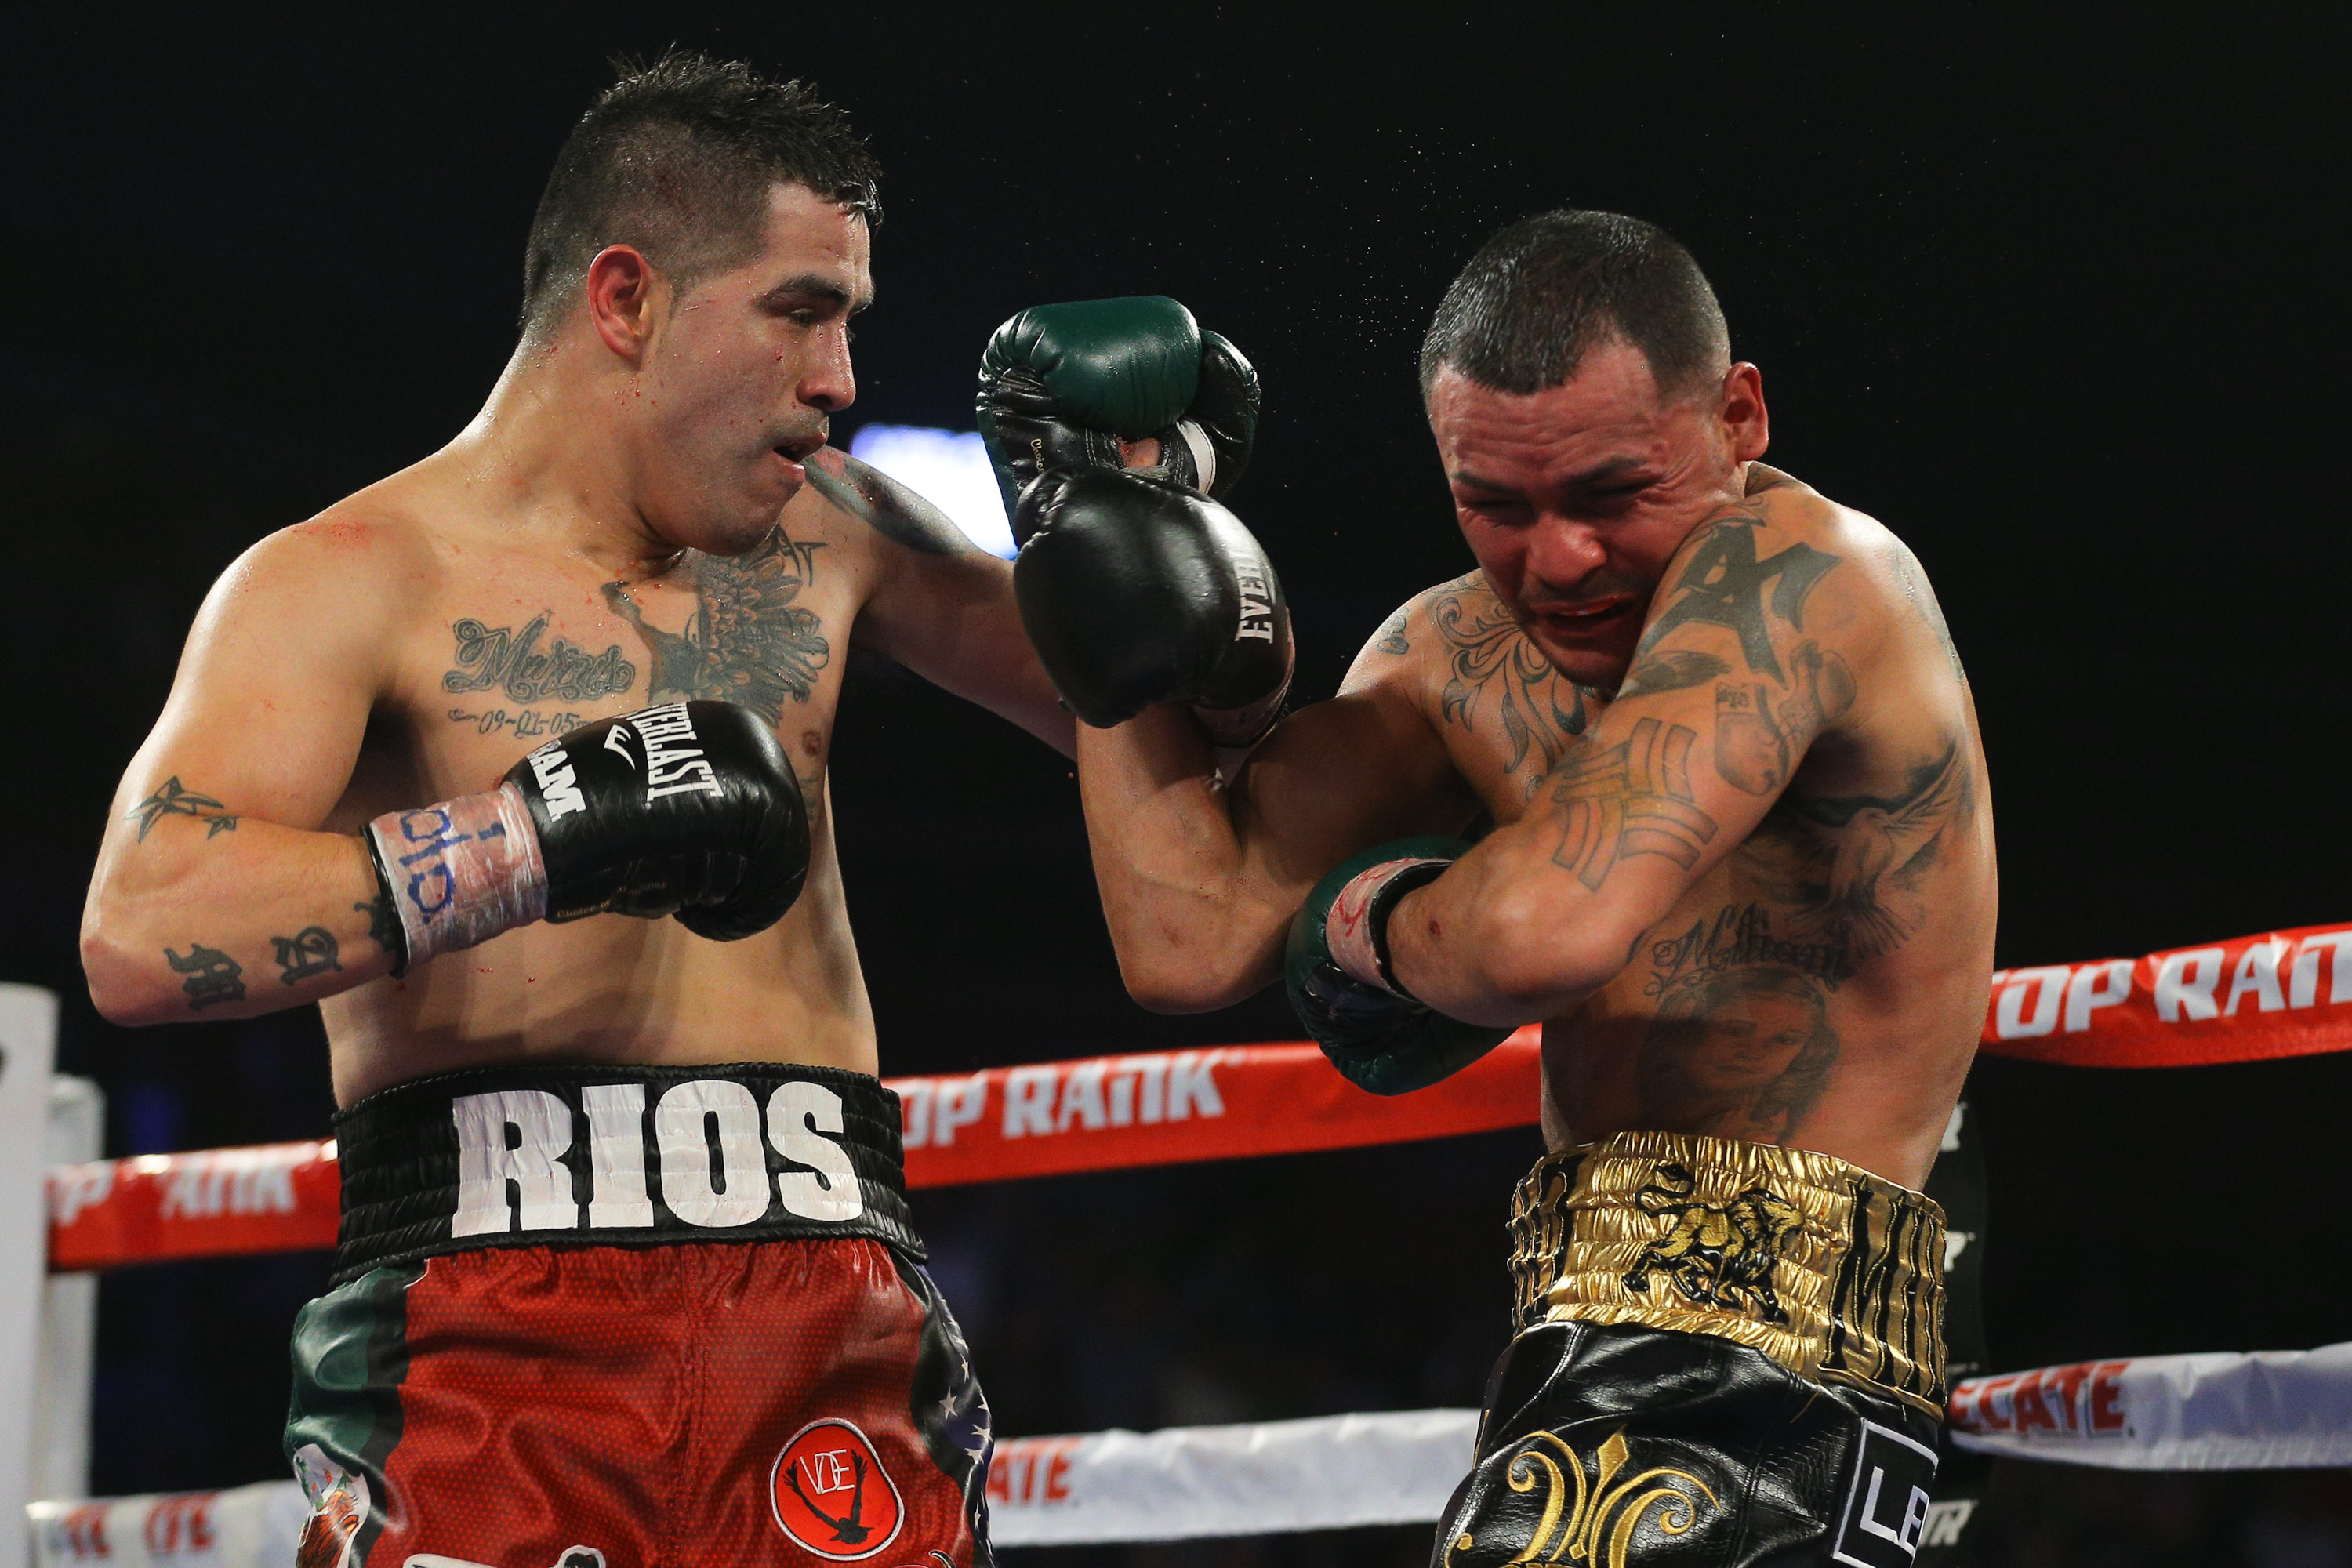 boxing news, Timothy Bradley vs. Brandon Rios fight, Timothy Bradley next fight, Brandon Rios next fight, hbo